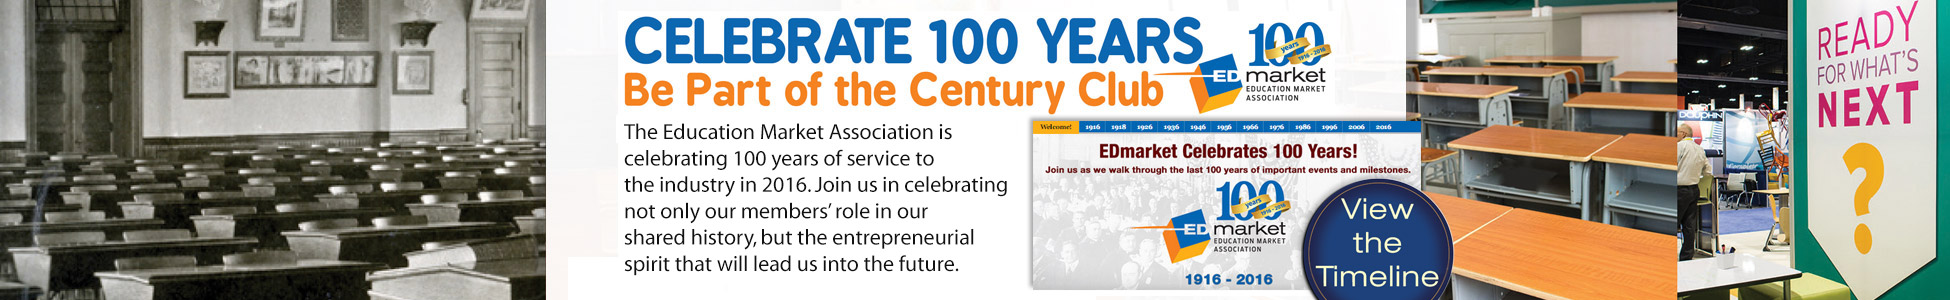 Be a Part of EDmarket's 100th Anniversary Century Club